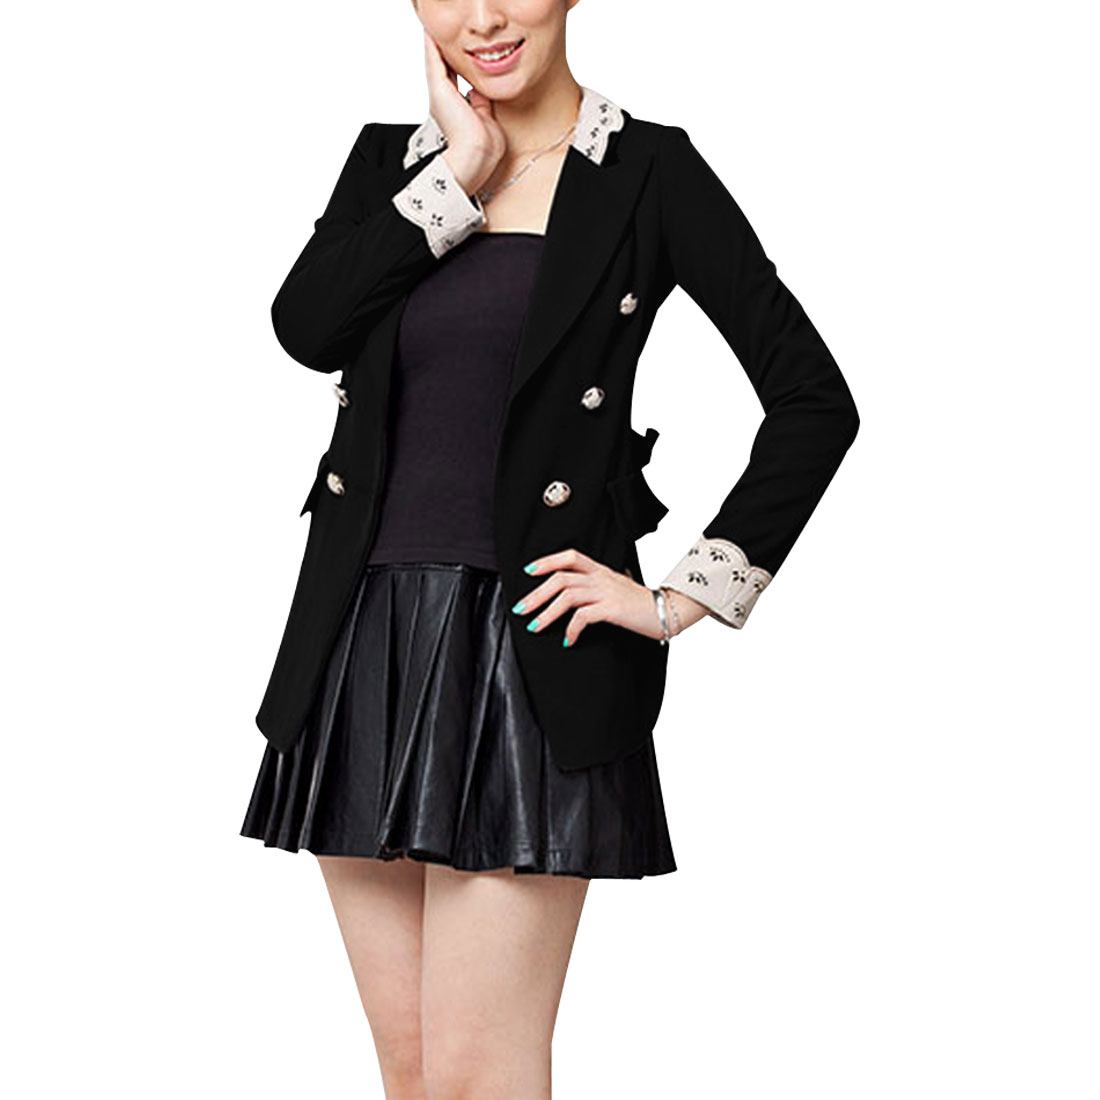 Women Peaked Lapel Double Breasted Blazer Coat Black S